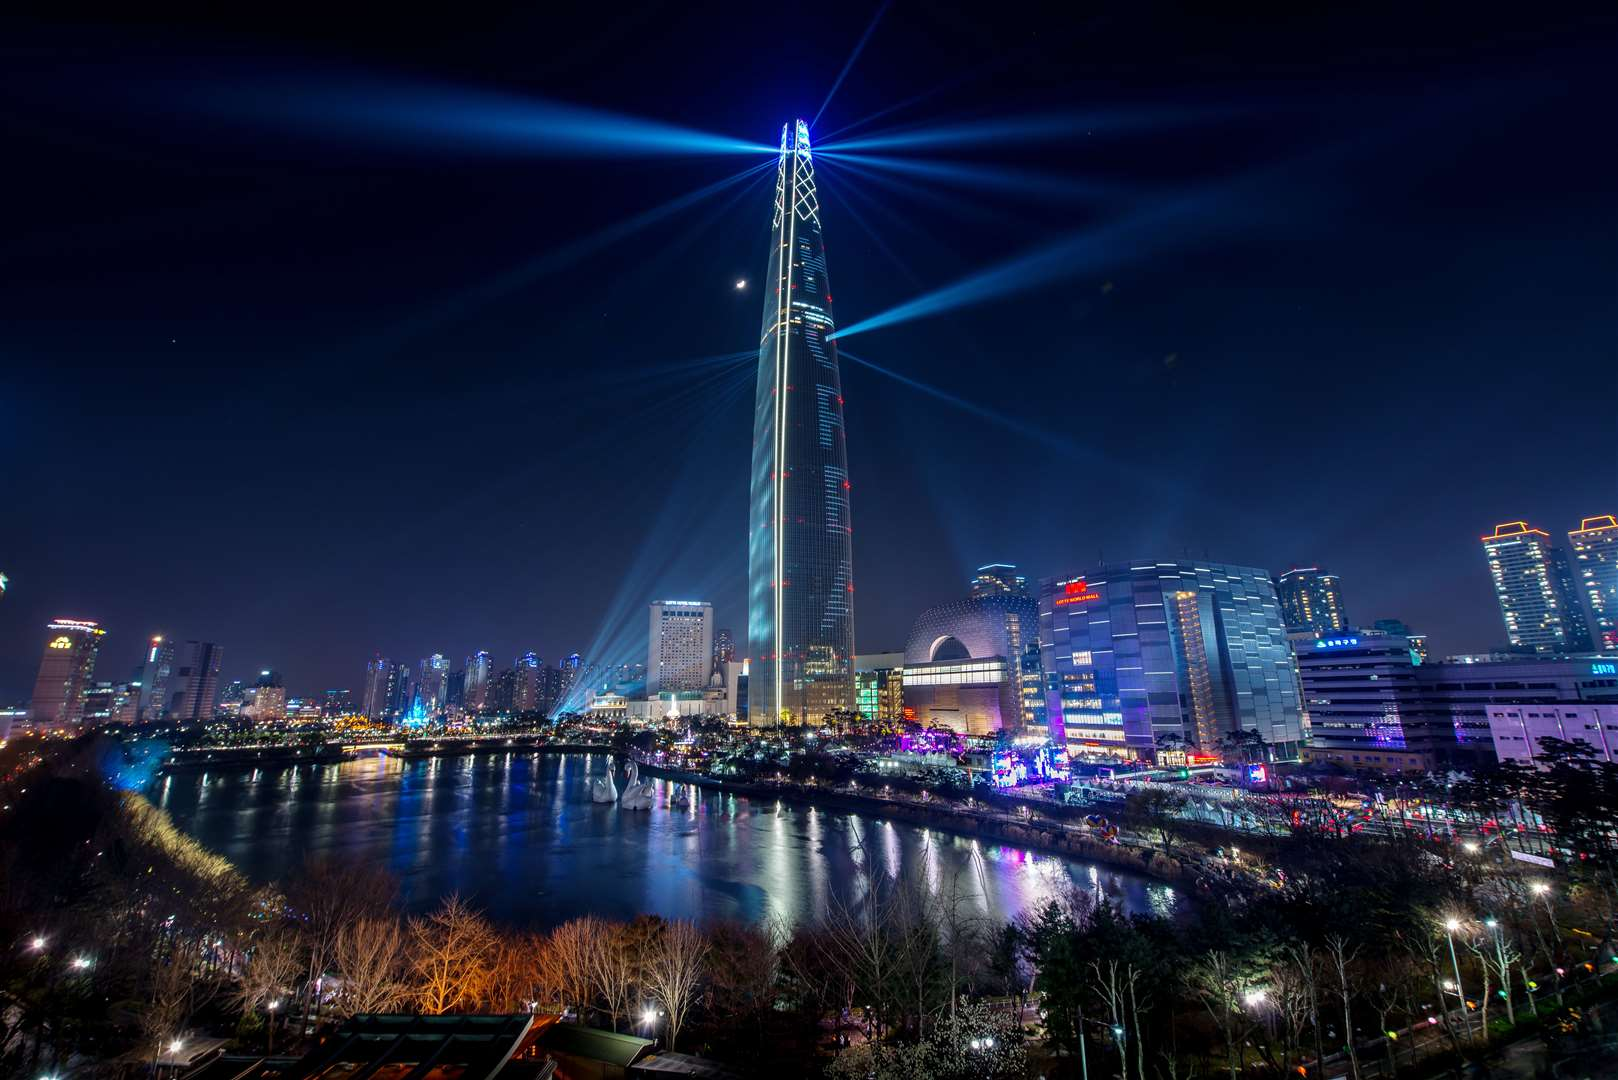 Lotte World Tower - the highest landmark in Seoul. Picture courtesy of the Korean Tourist Organization.